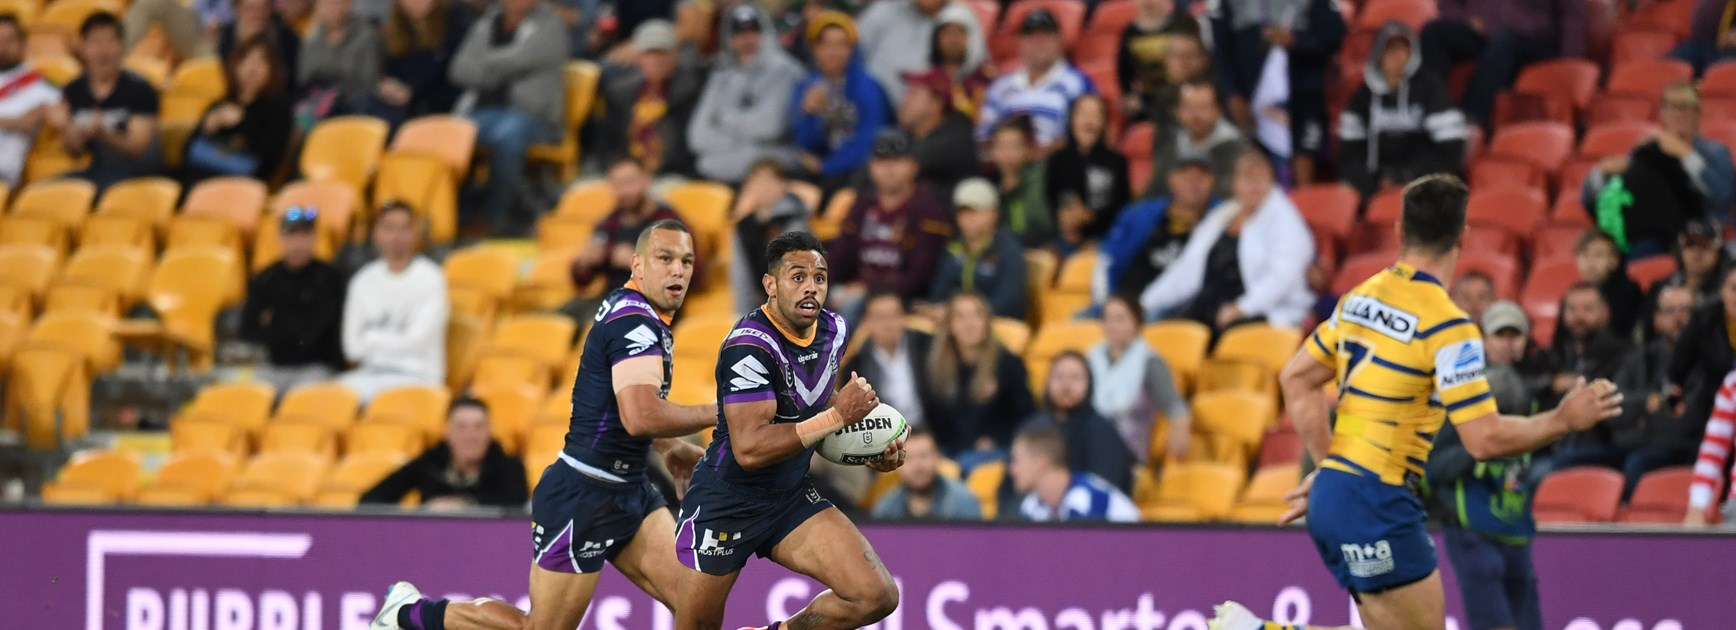 Addo-Carr sets new NRL record as speedster's XIII is revealed